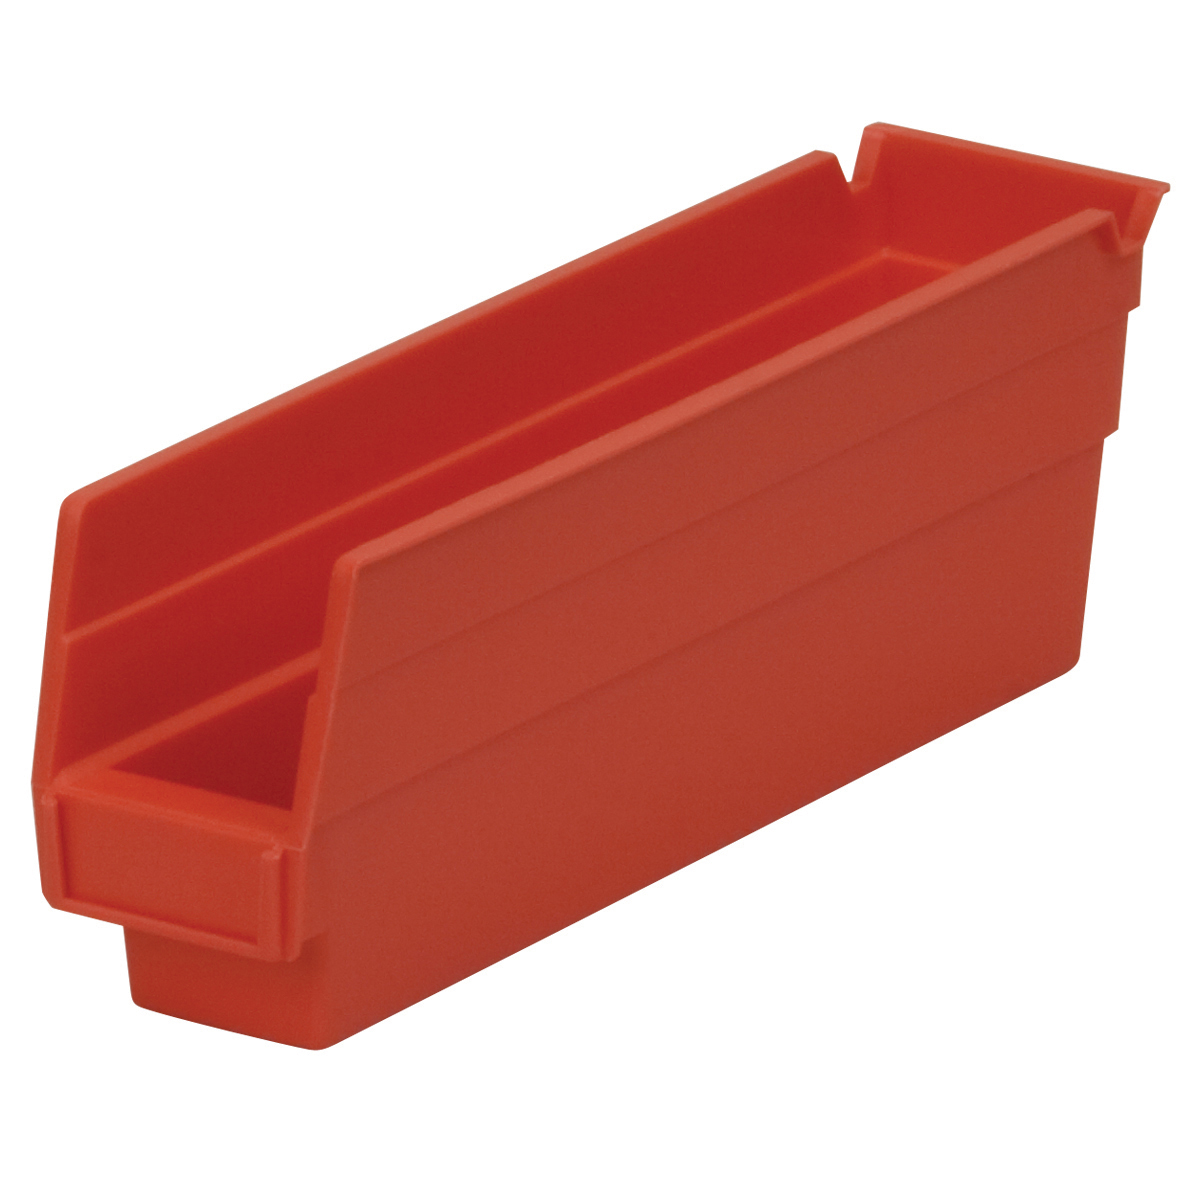 Shelf Bin 11-5/8 x 2-3/4 x 4, Red (30110RED).  This item sold in carton quantities of 24.